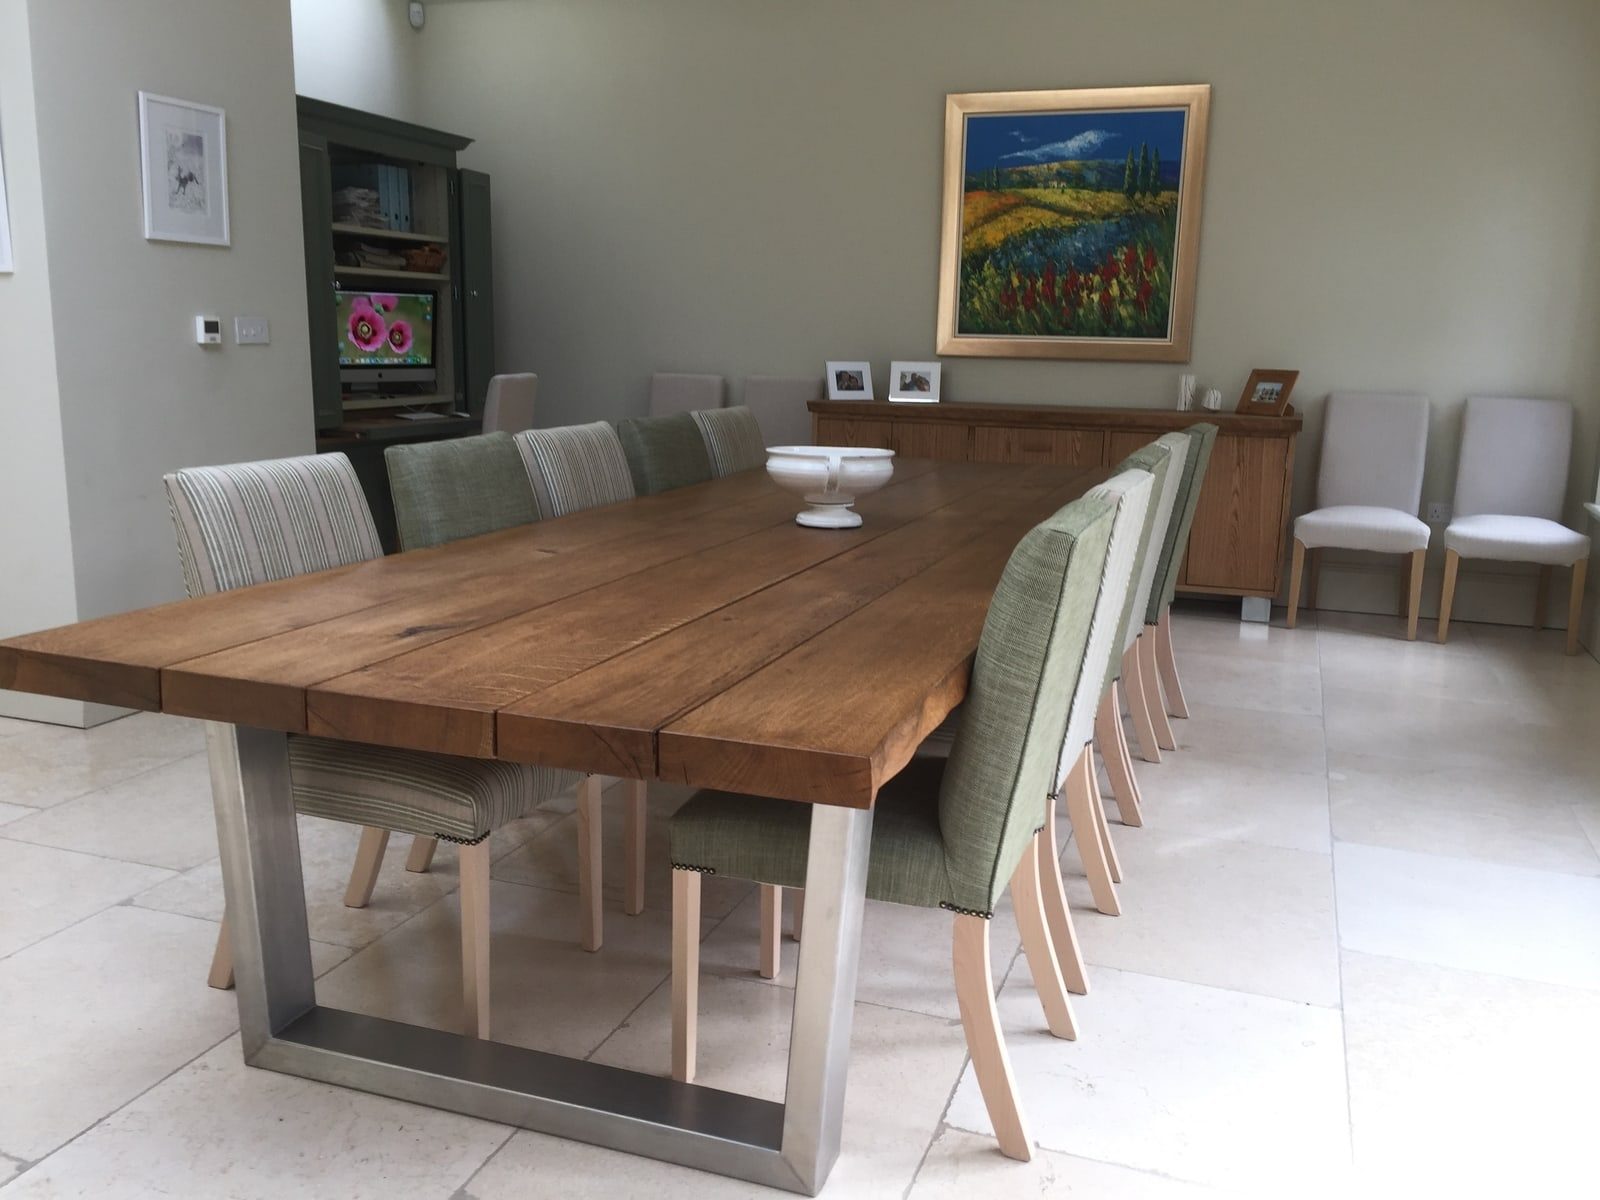 Large oak sideboard and dining table setproject 531Abacus Tables image 1